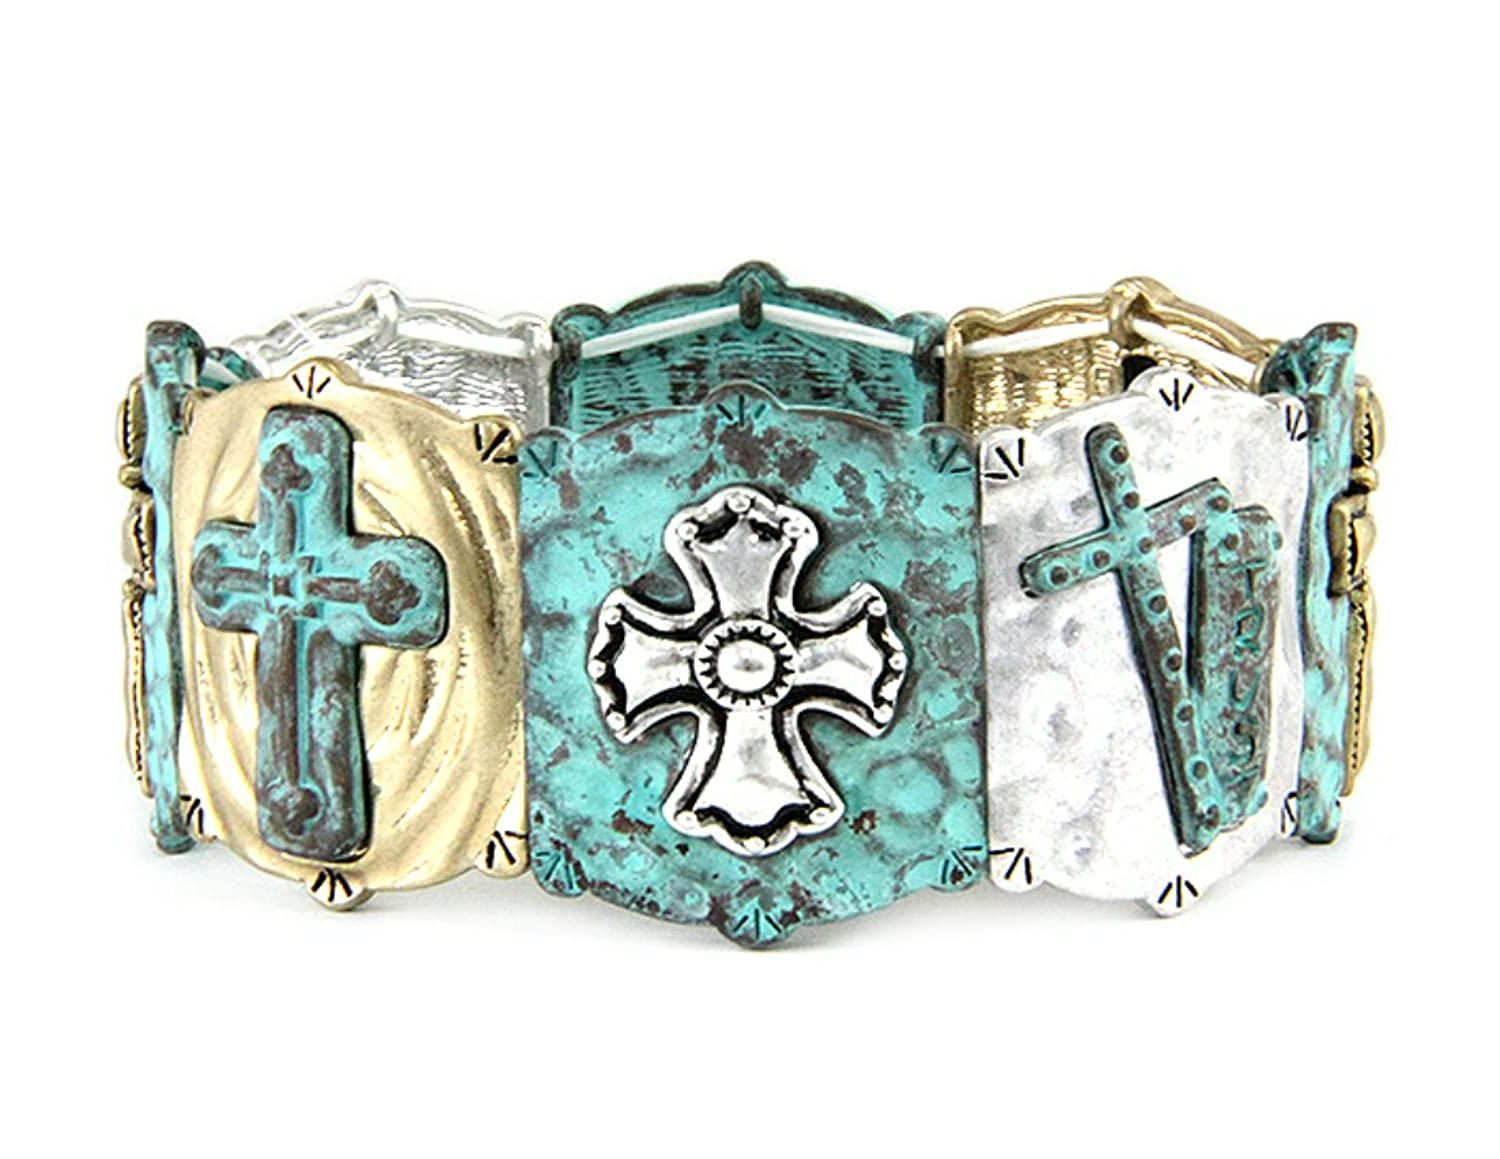 """Rustic Cross"" Religious Inspirational Engraved Hammered Tri-tone Stretch Bracelet By Athena Brand"